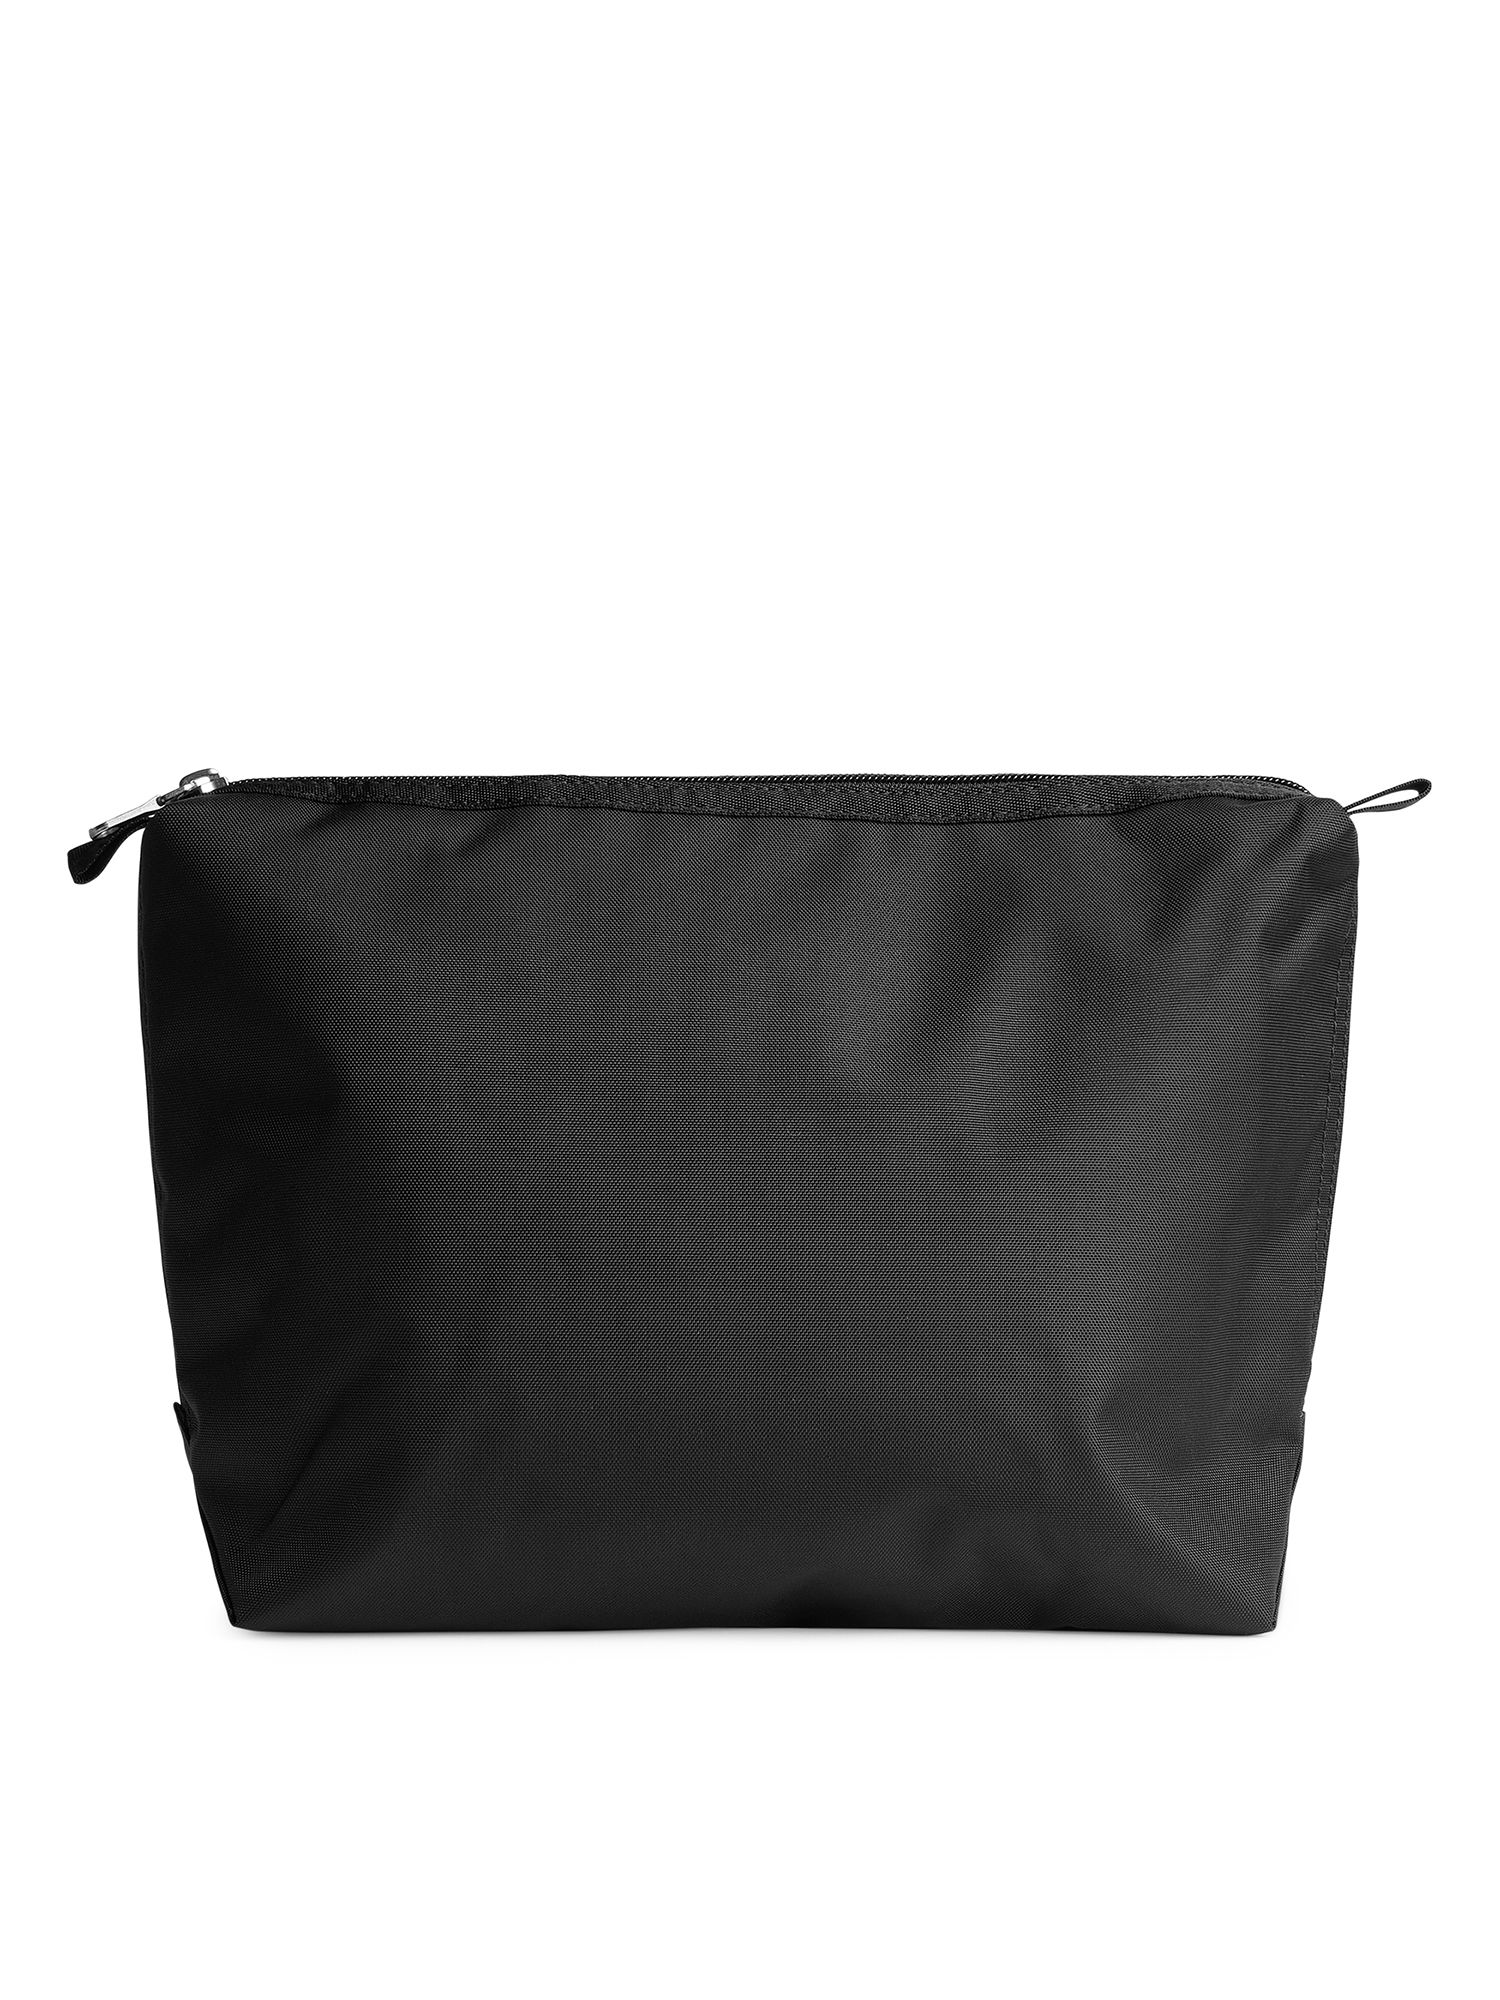 Fabric Swatch image of Arket large toiletry bag in black